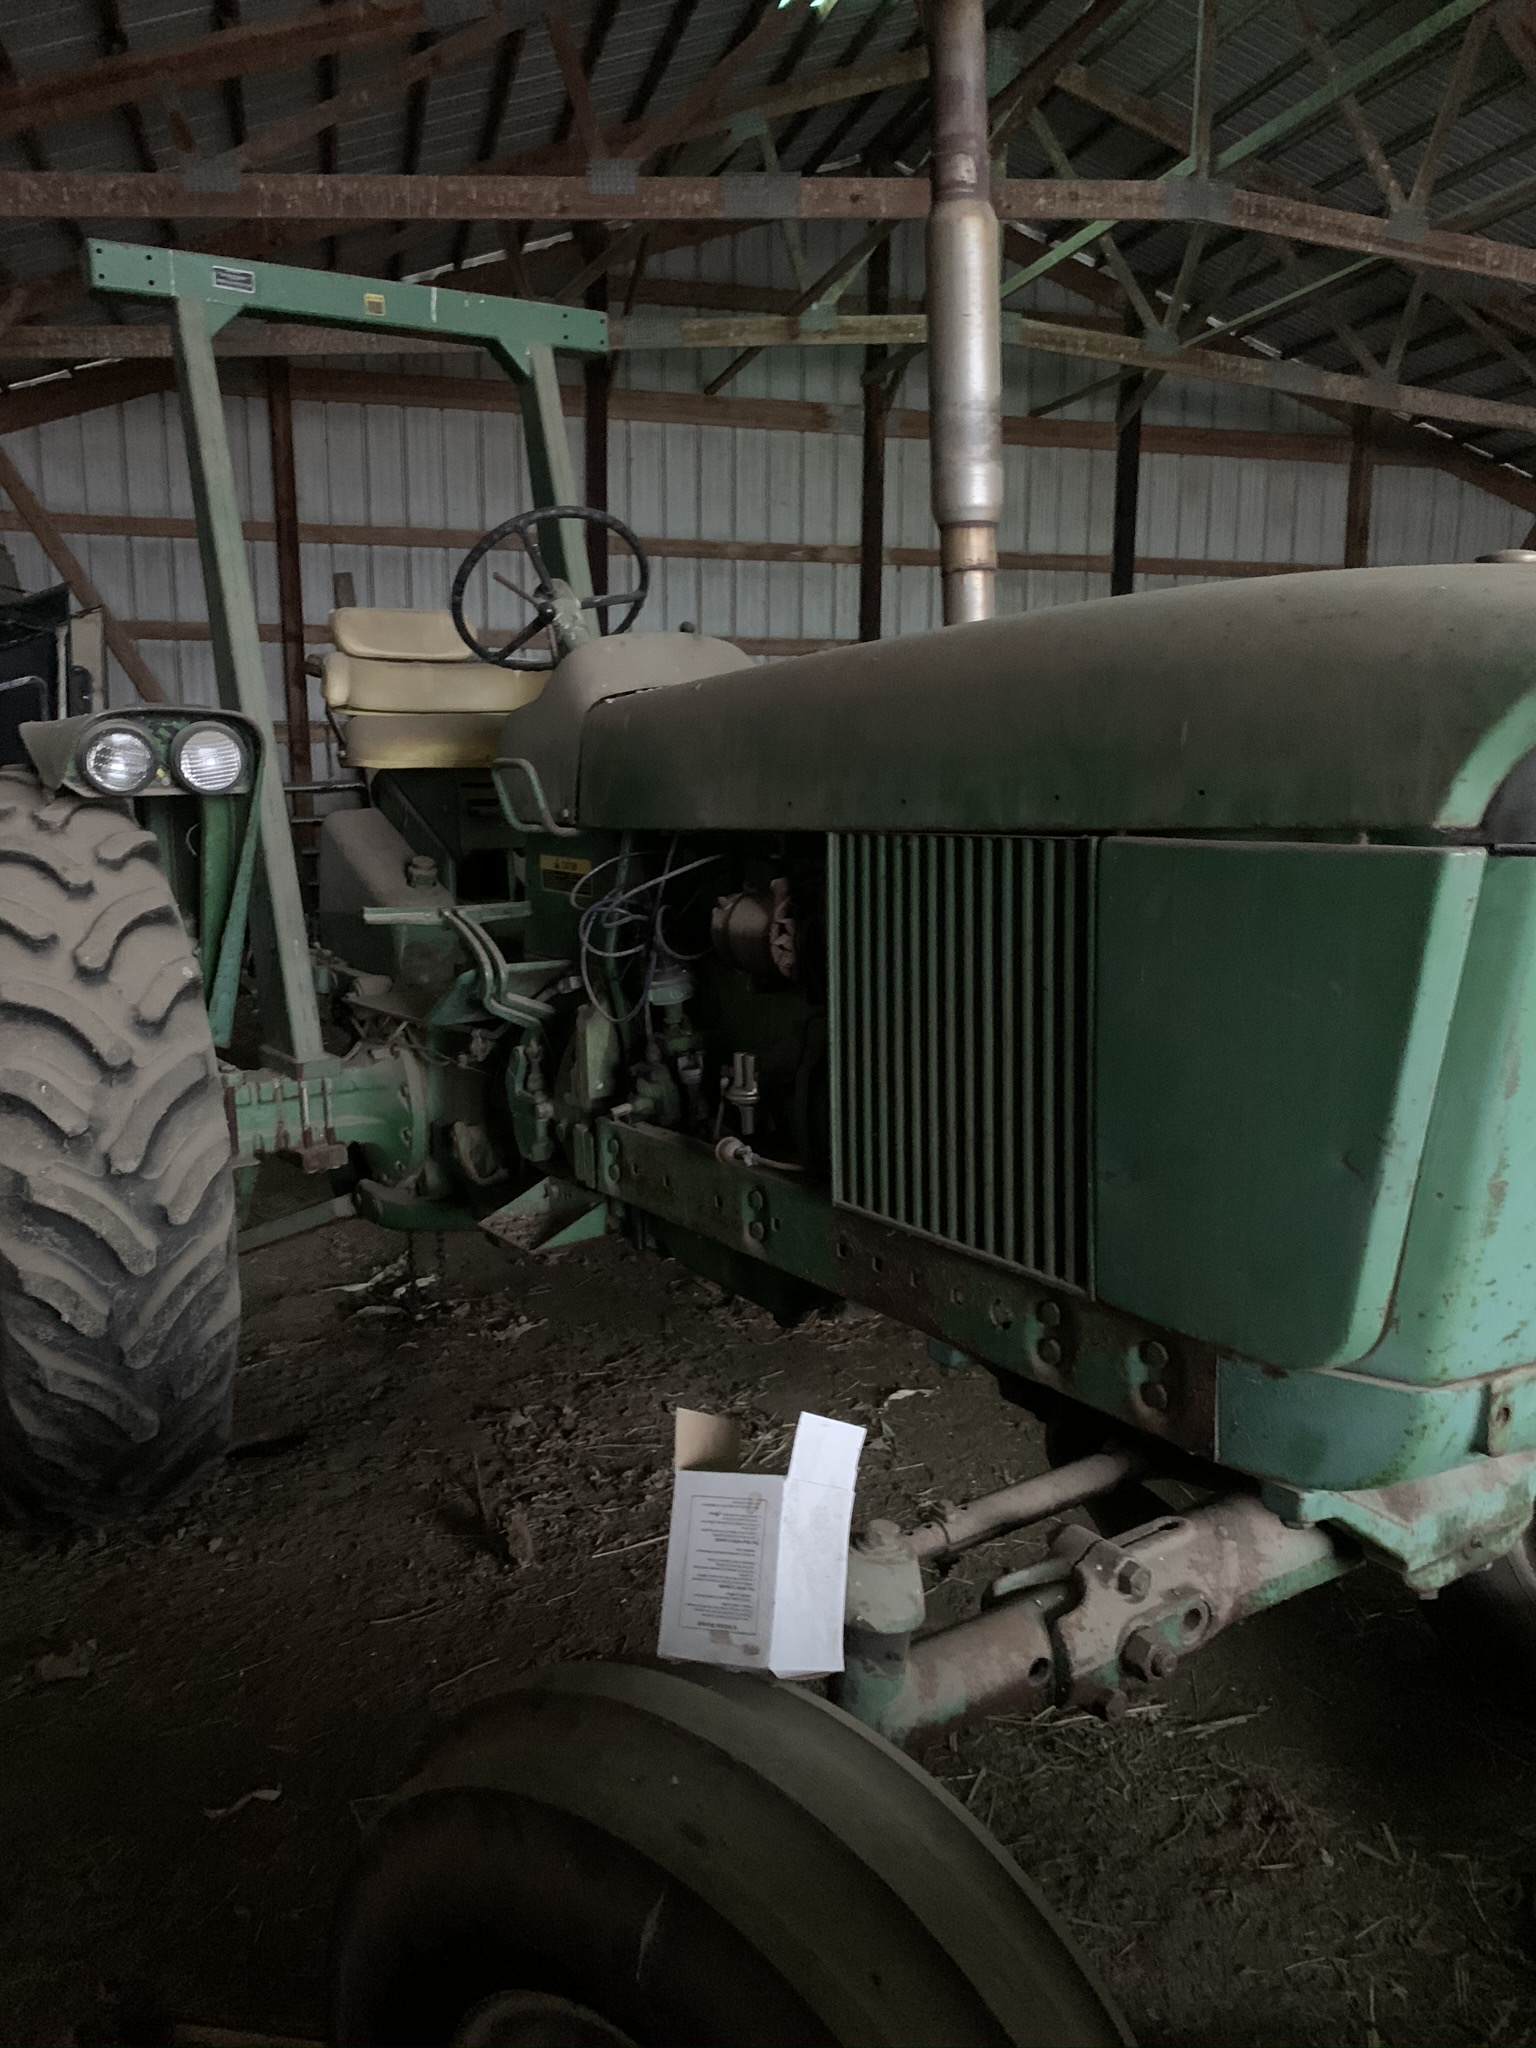 1962 JD 3010 GAS, Synchro Range Transmission, Single Hydraulic Remote - Image 4 of 4